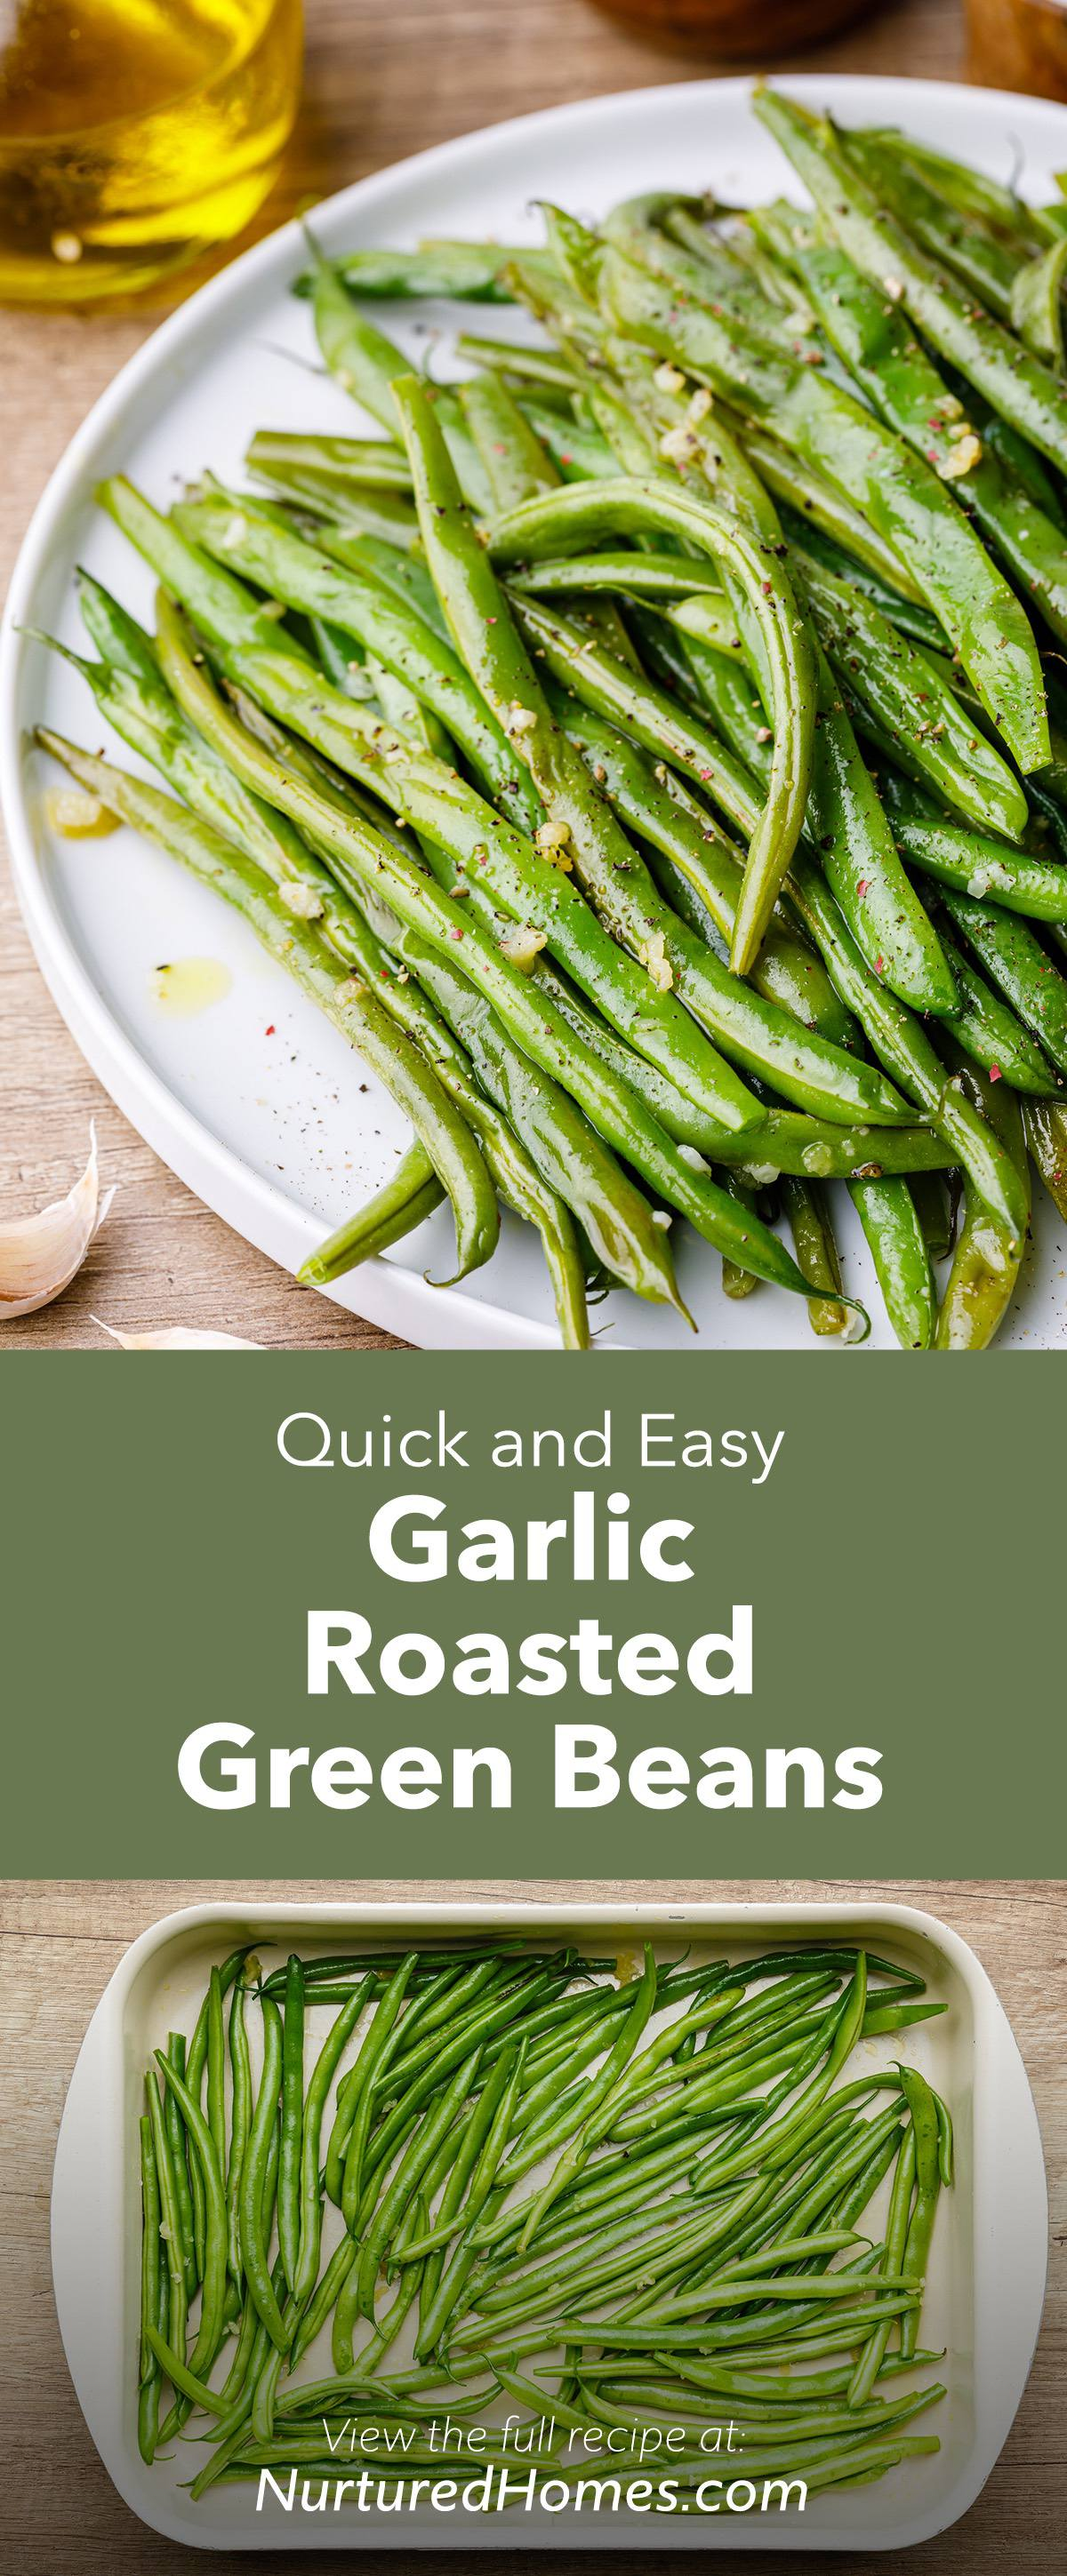 Quick and Easy Garlic Roasted Green Beans